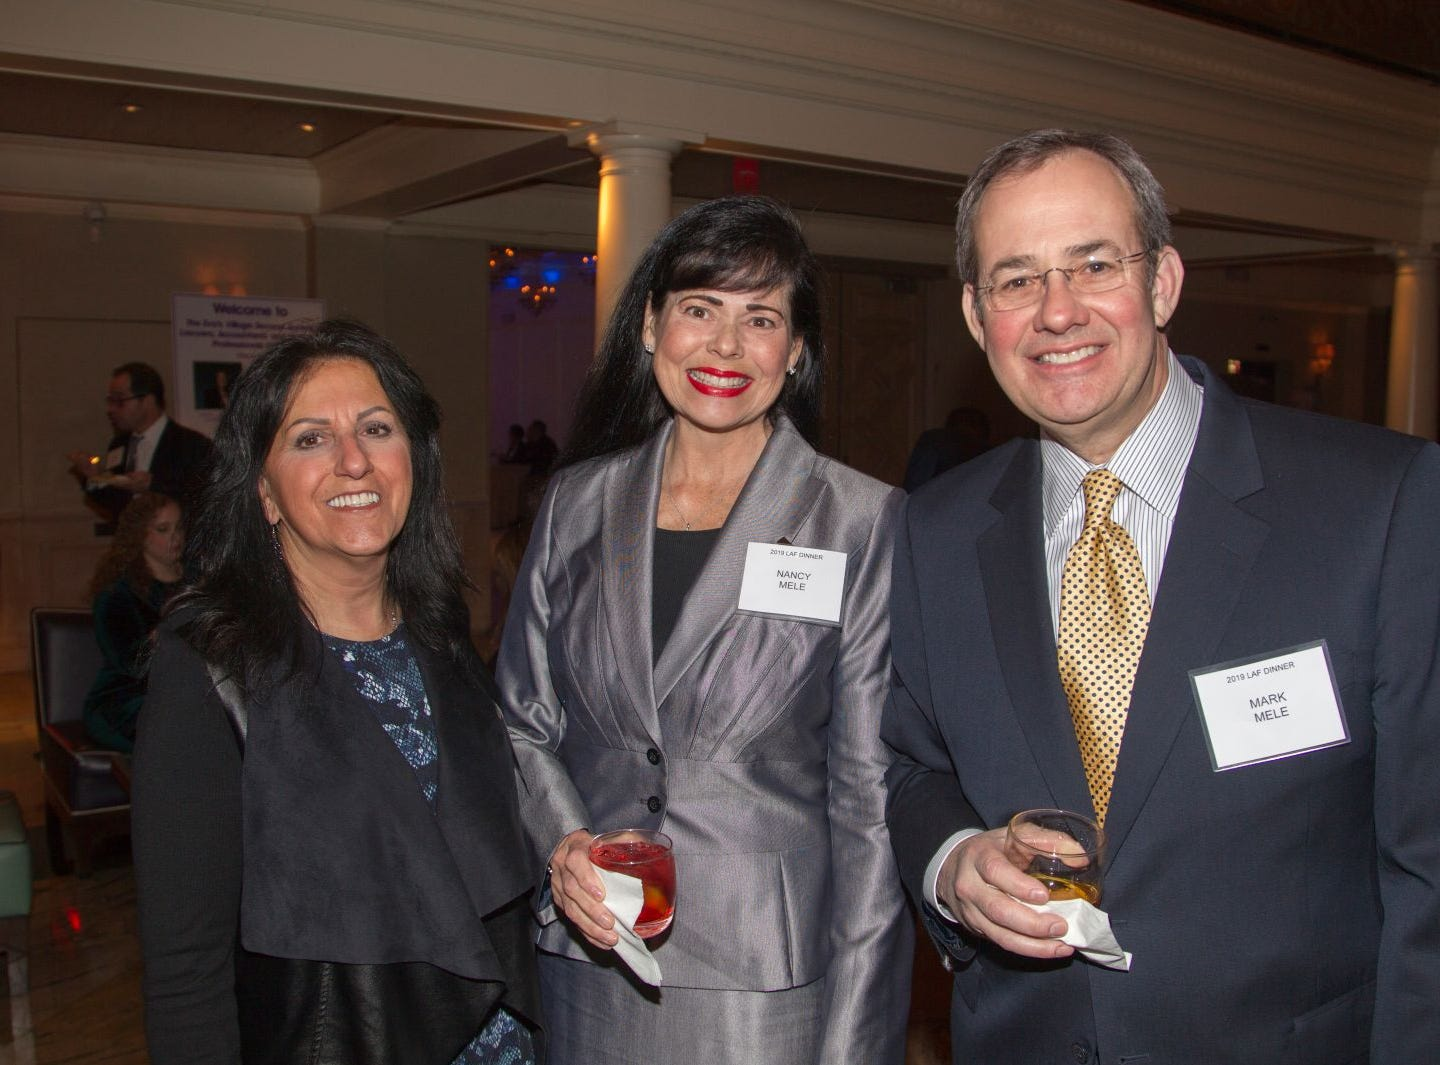 maria Geiger, nancy Mele, Mark Mele. Eva's Village hosted its second annual Lawyers, Accountants and Financial Professionals Benefit Dinner at Westmount Country Club in Woodland Park. 02/21/2019